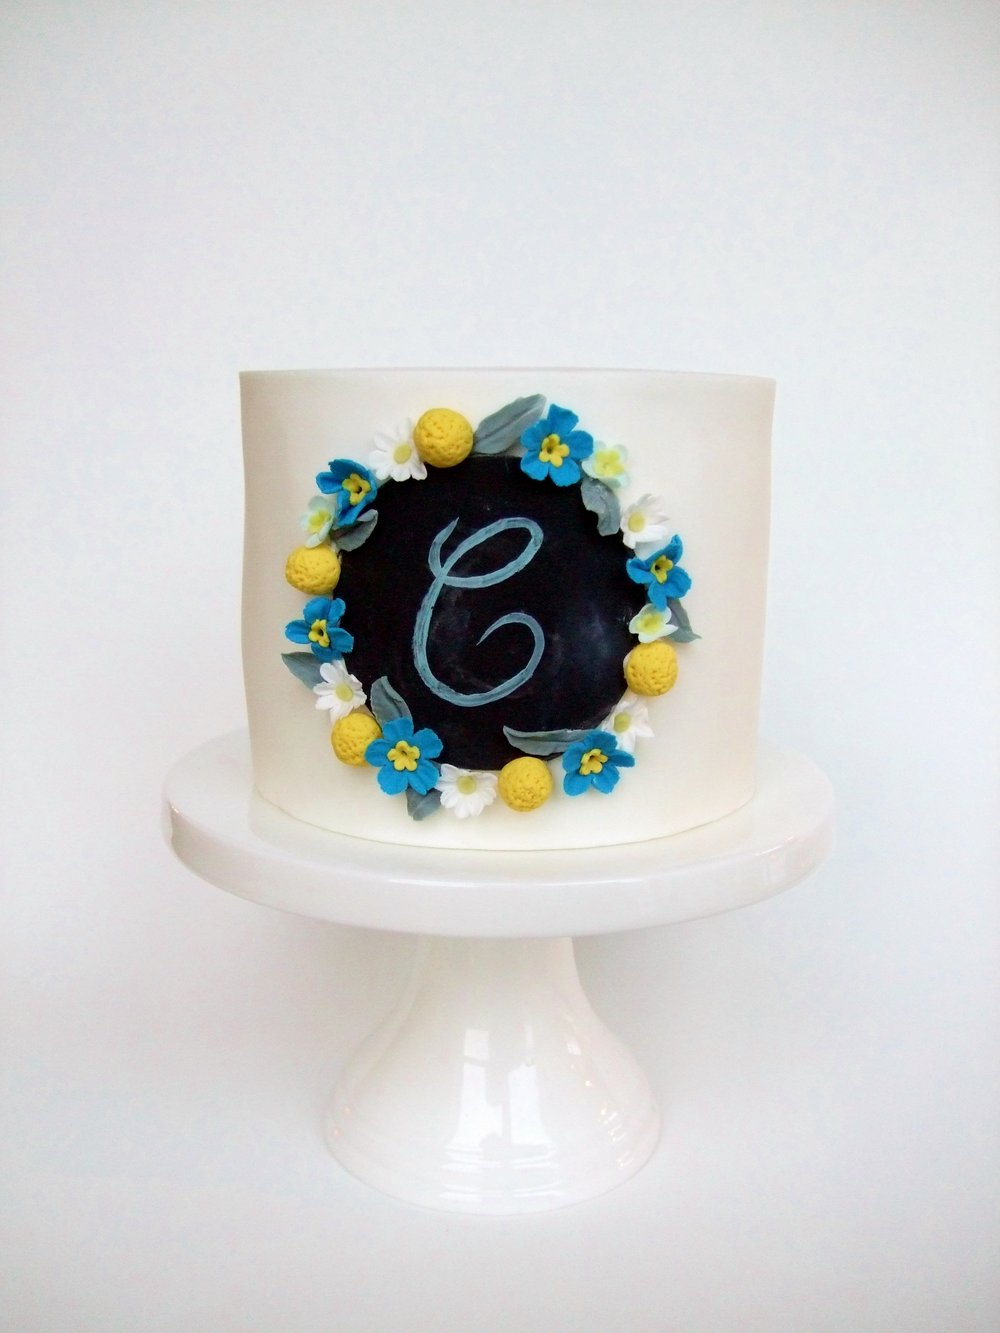 Rebecca Jane Sugar Art - mini chalkboard wreath cake